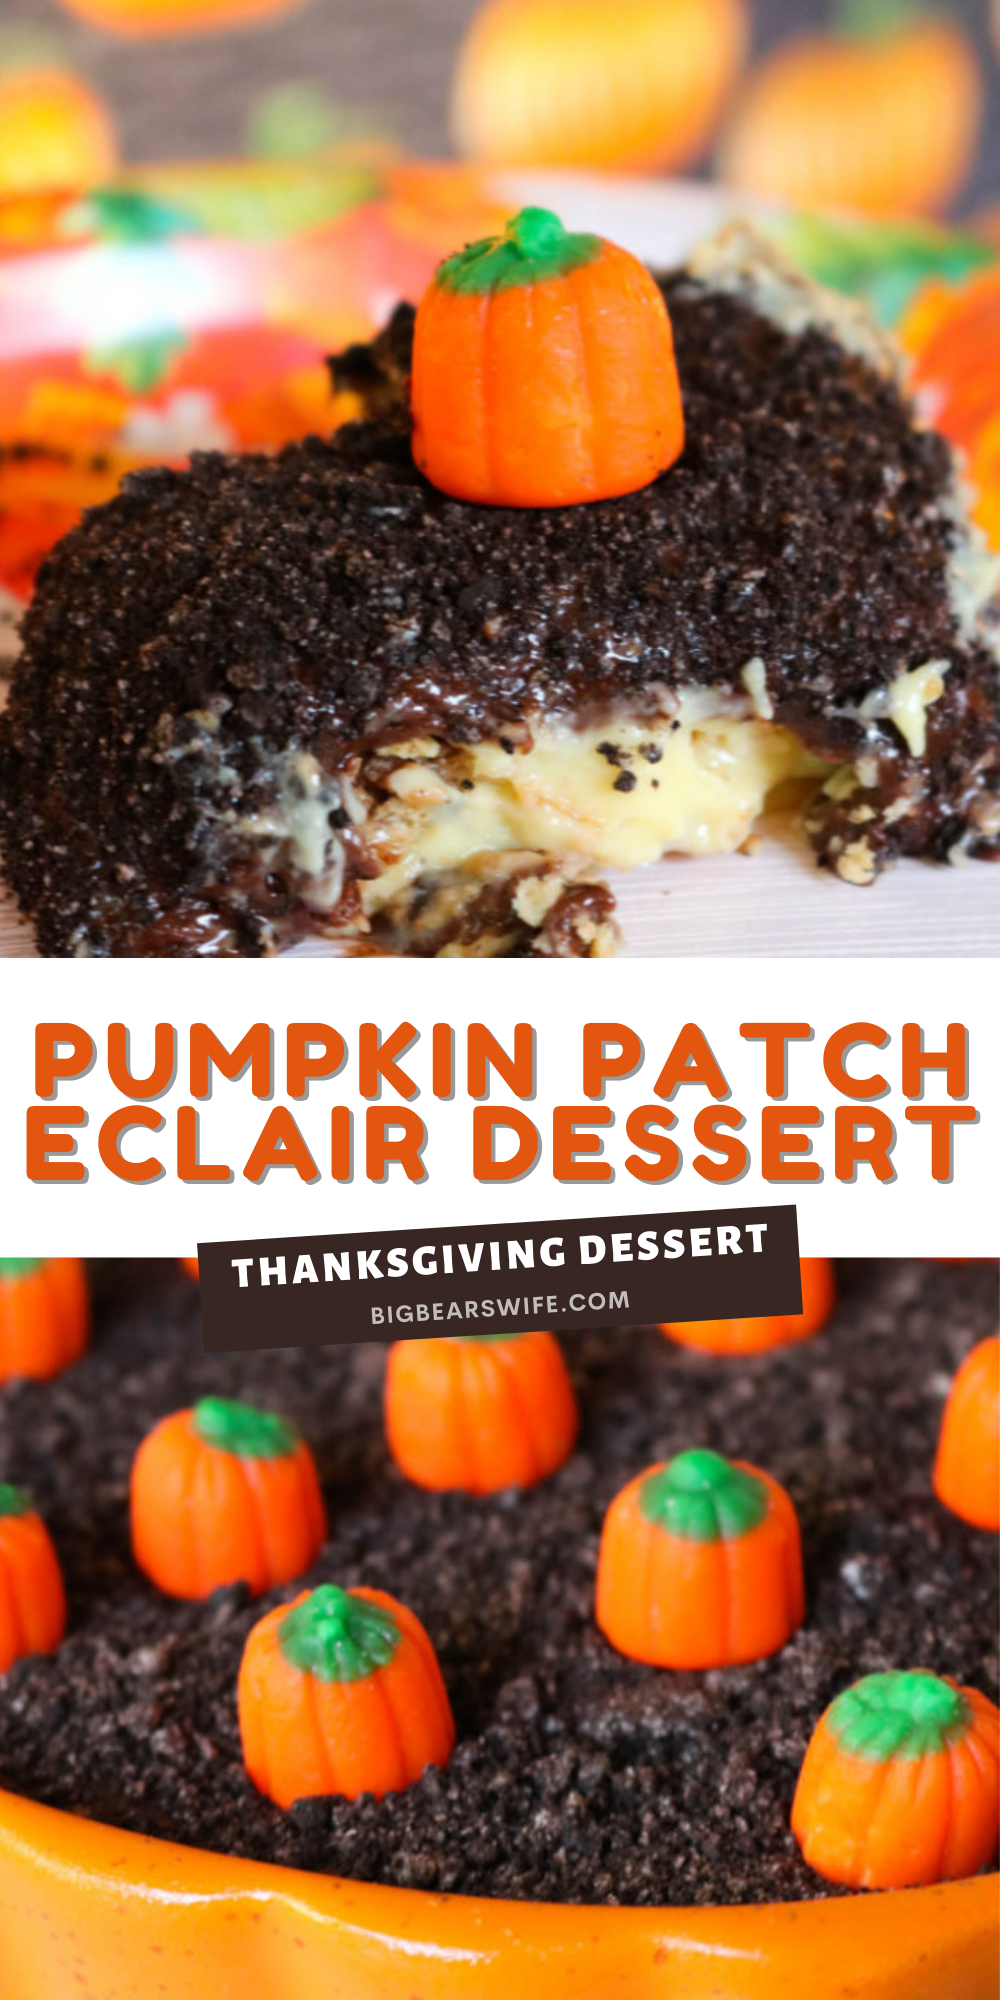 This Pumpkin Patch Eclair Dessert is perfect for any fall party, Halloween or Thanksgiving dinner! It's easy to make and one of our favorites!  via @bigbearswife